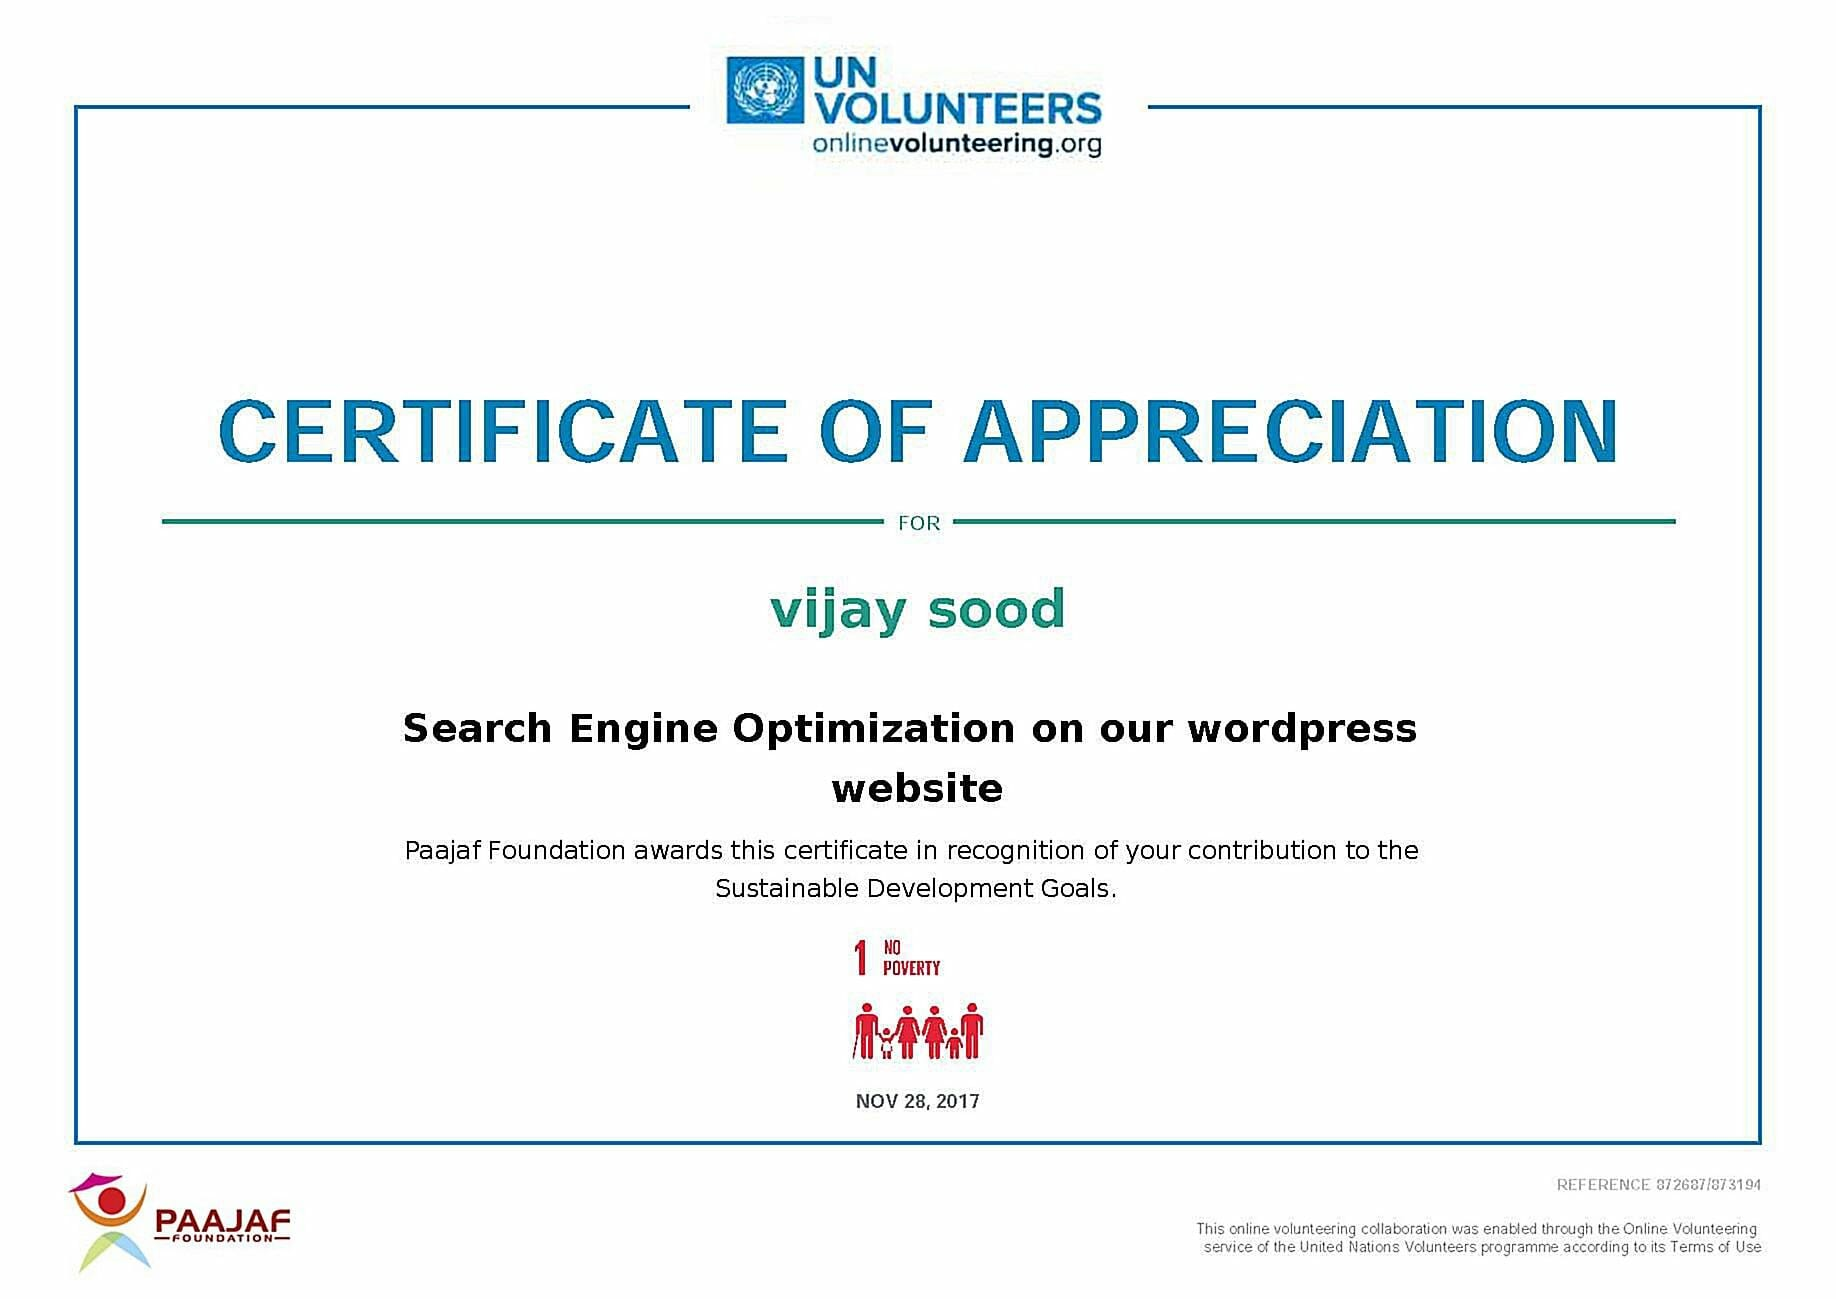 UN volunteers Certificate Vijay Sood SwiftPropel